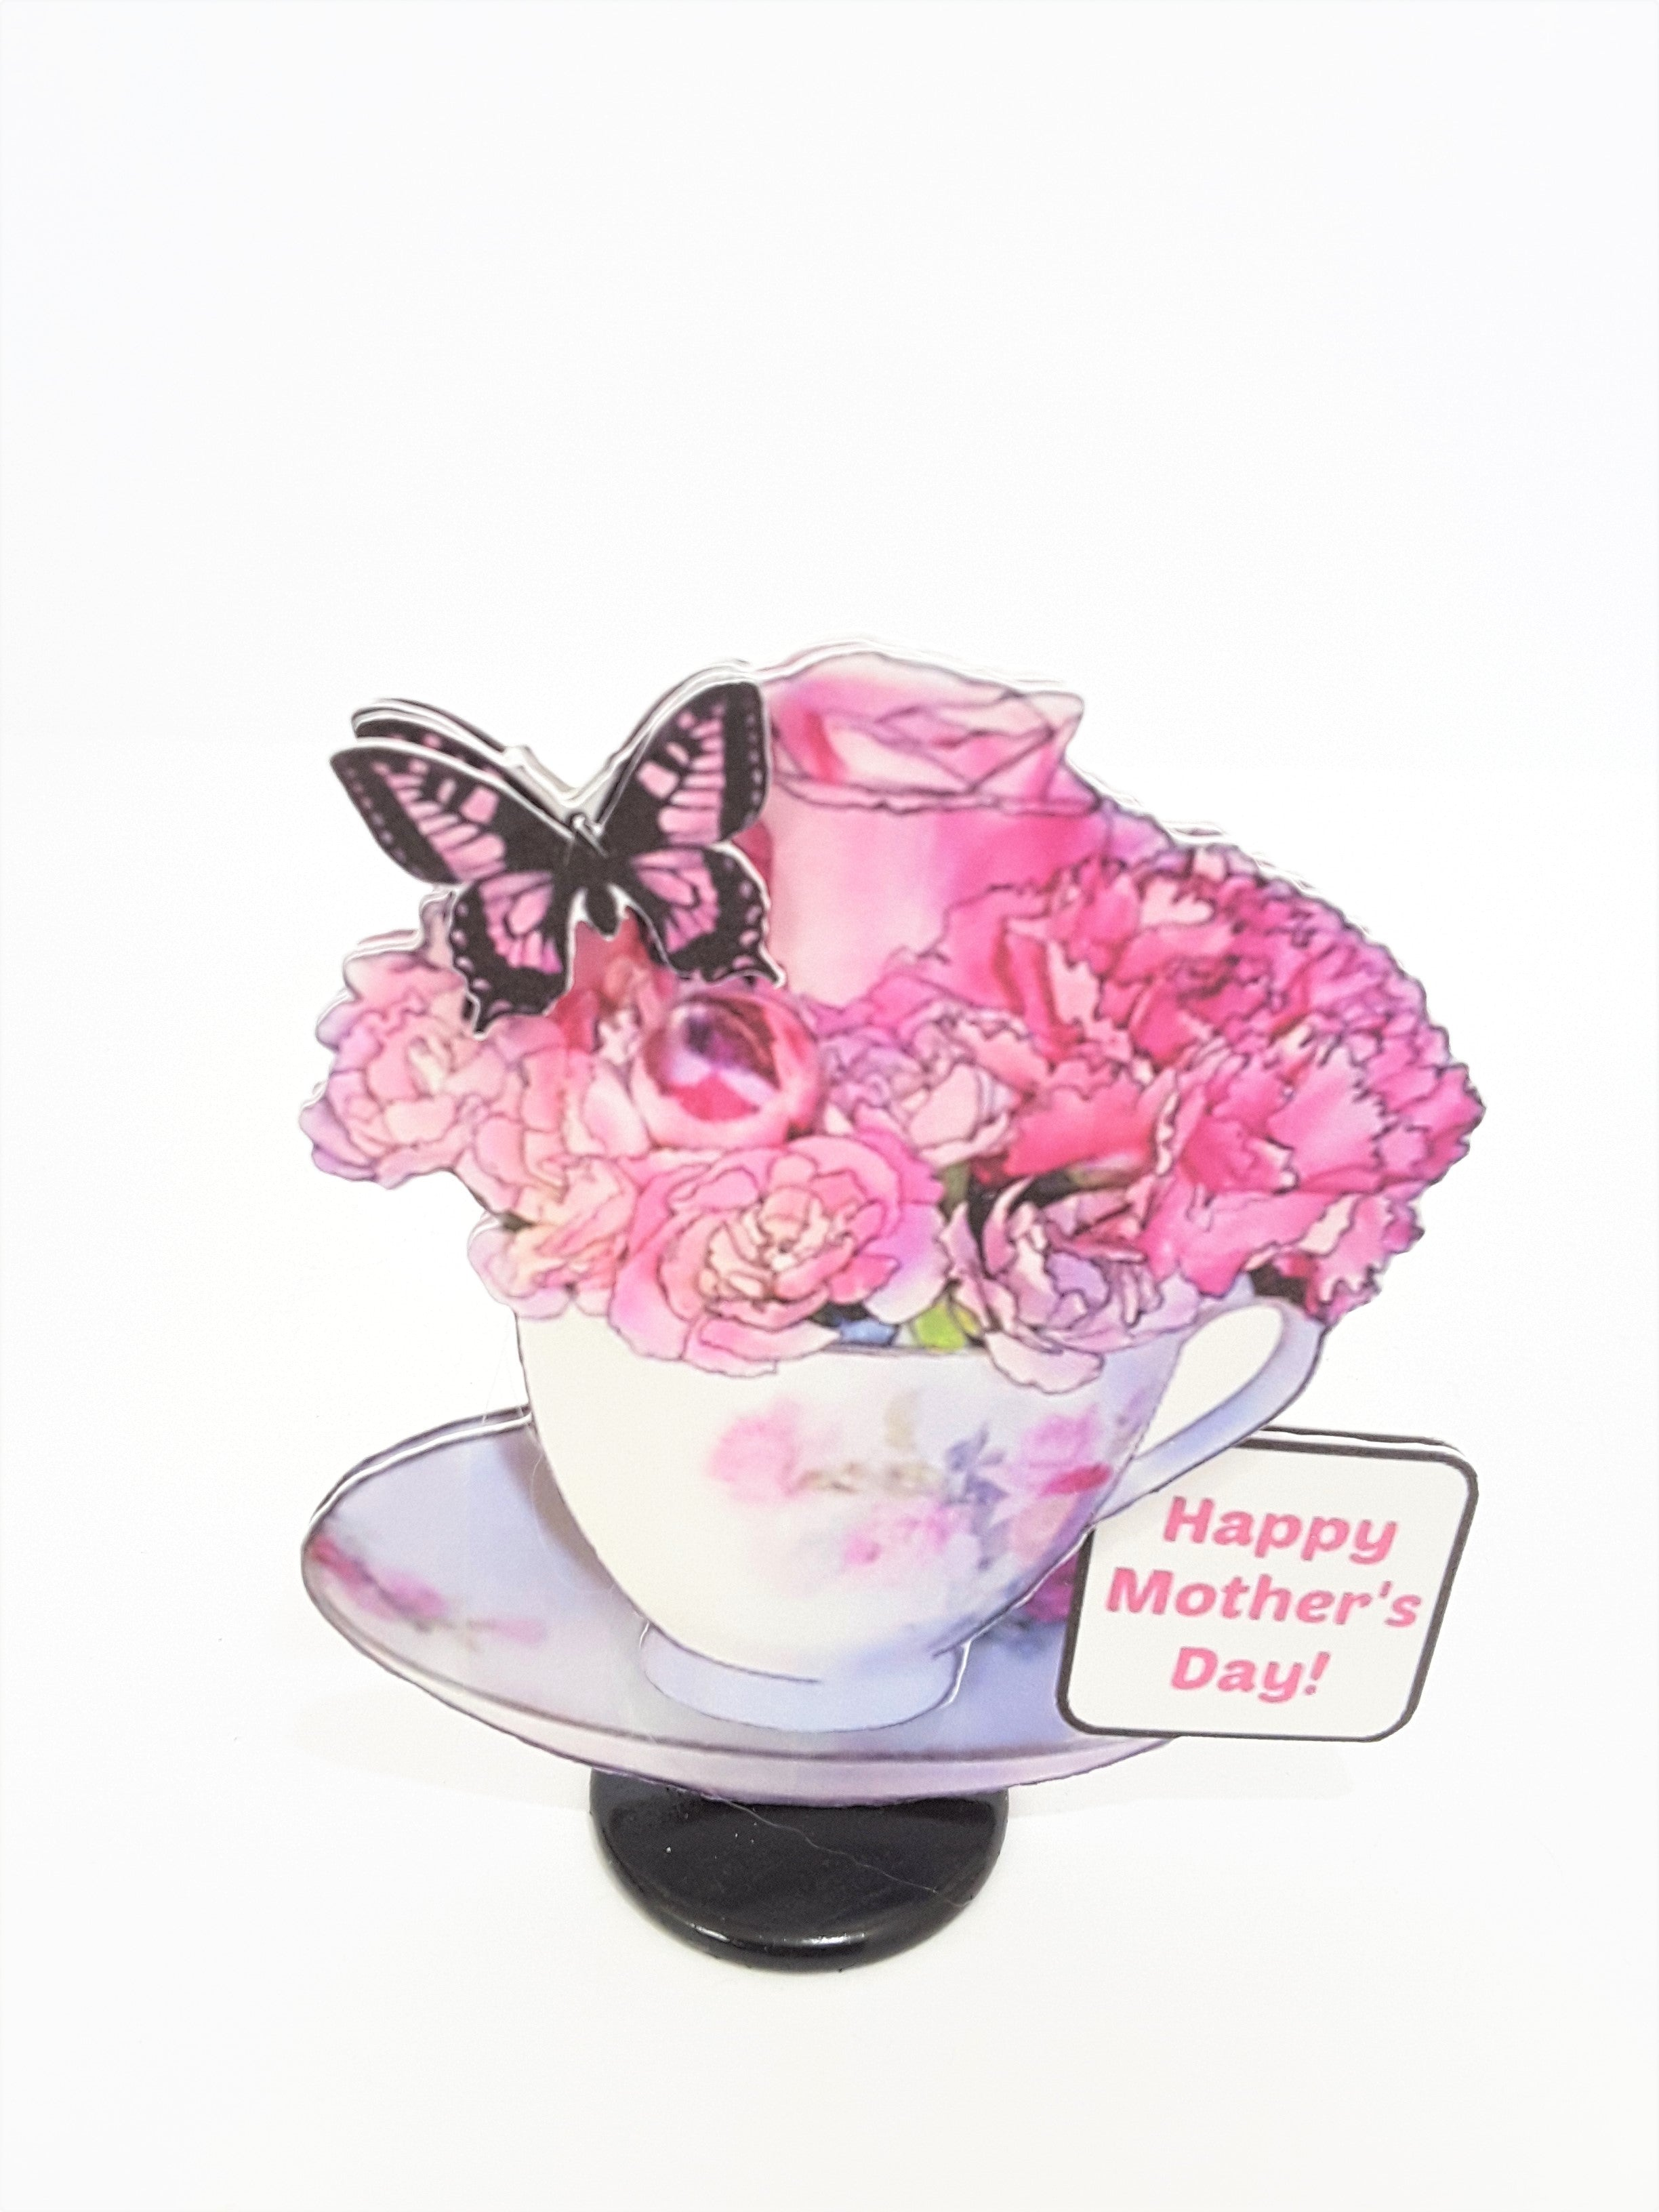 Happy Mother's Day 3D teacup of roses greeting card